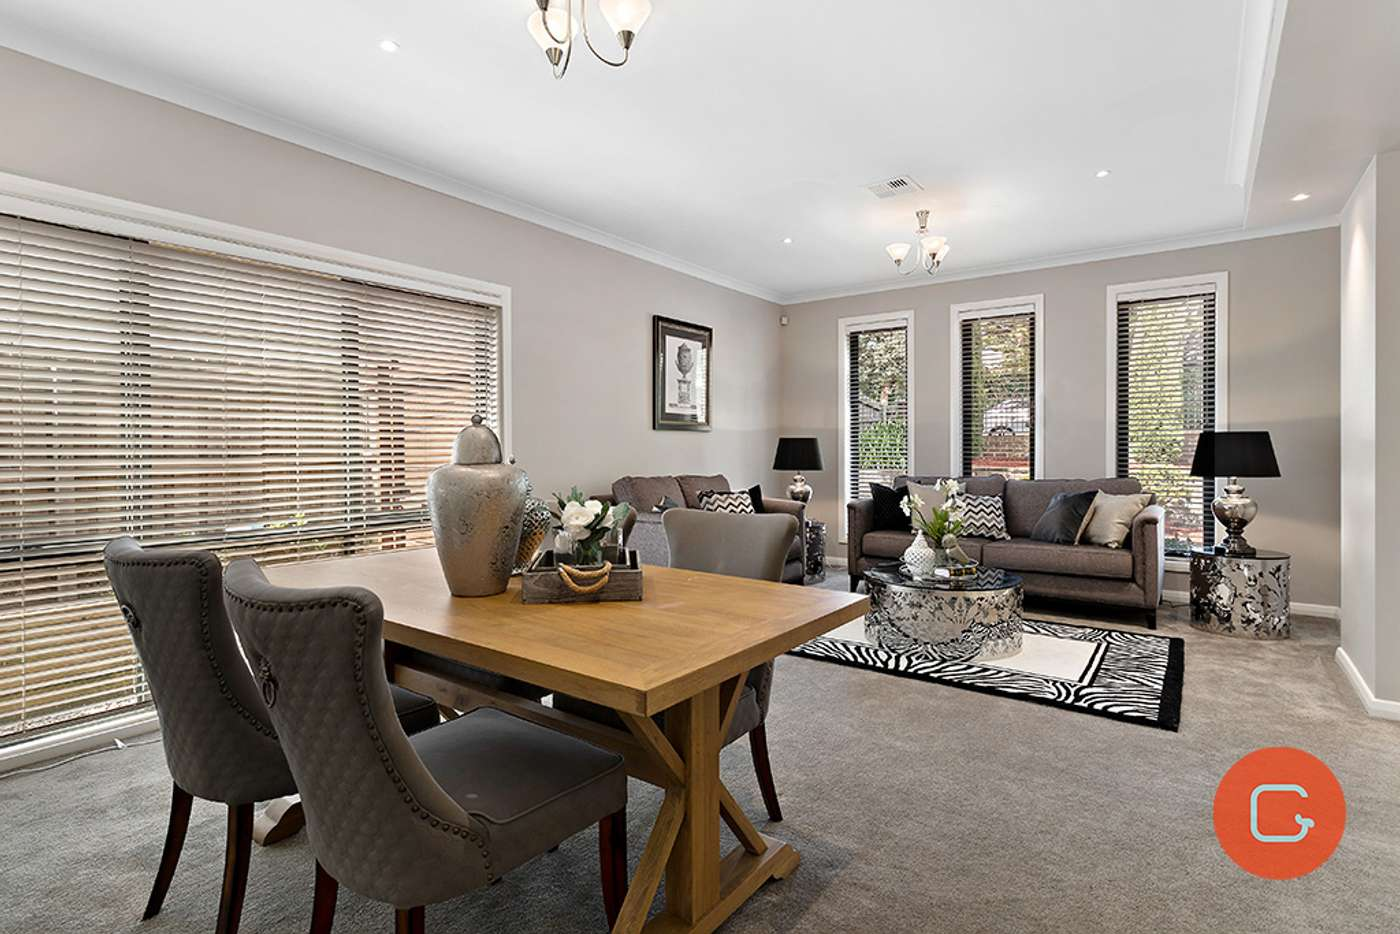 Fifth view of Homely house listing, 7 Harvie Street, Glen Waverley VIC 3150